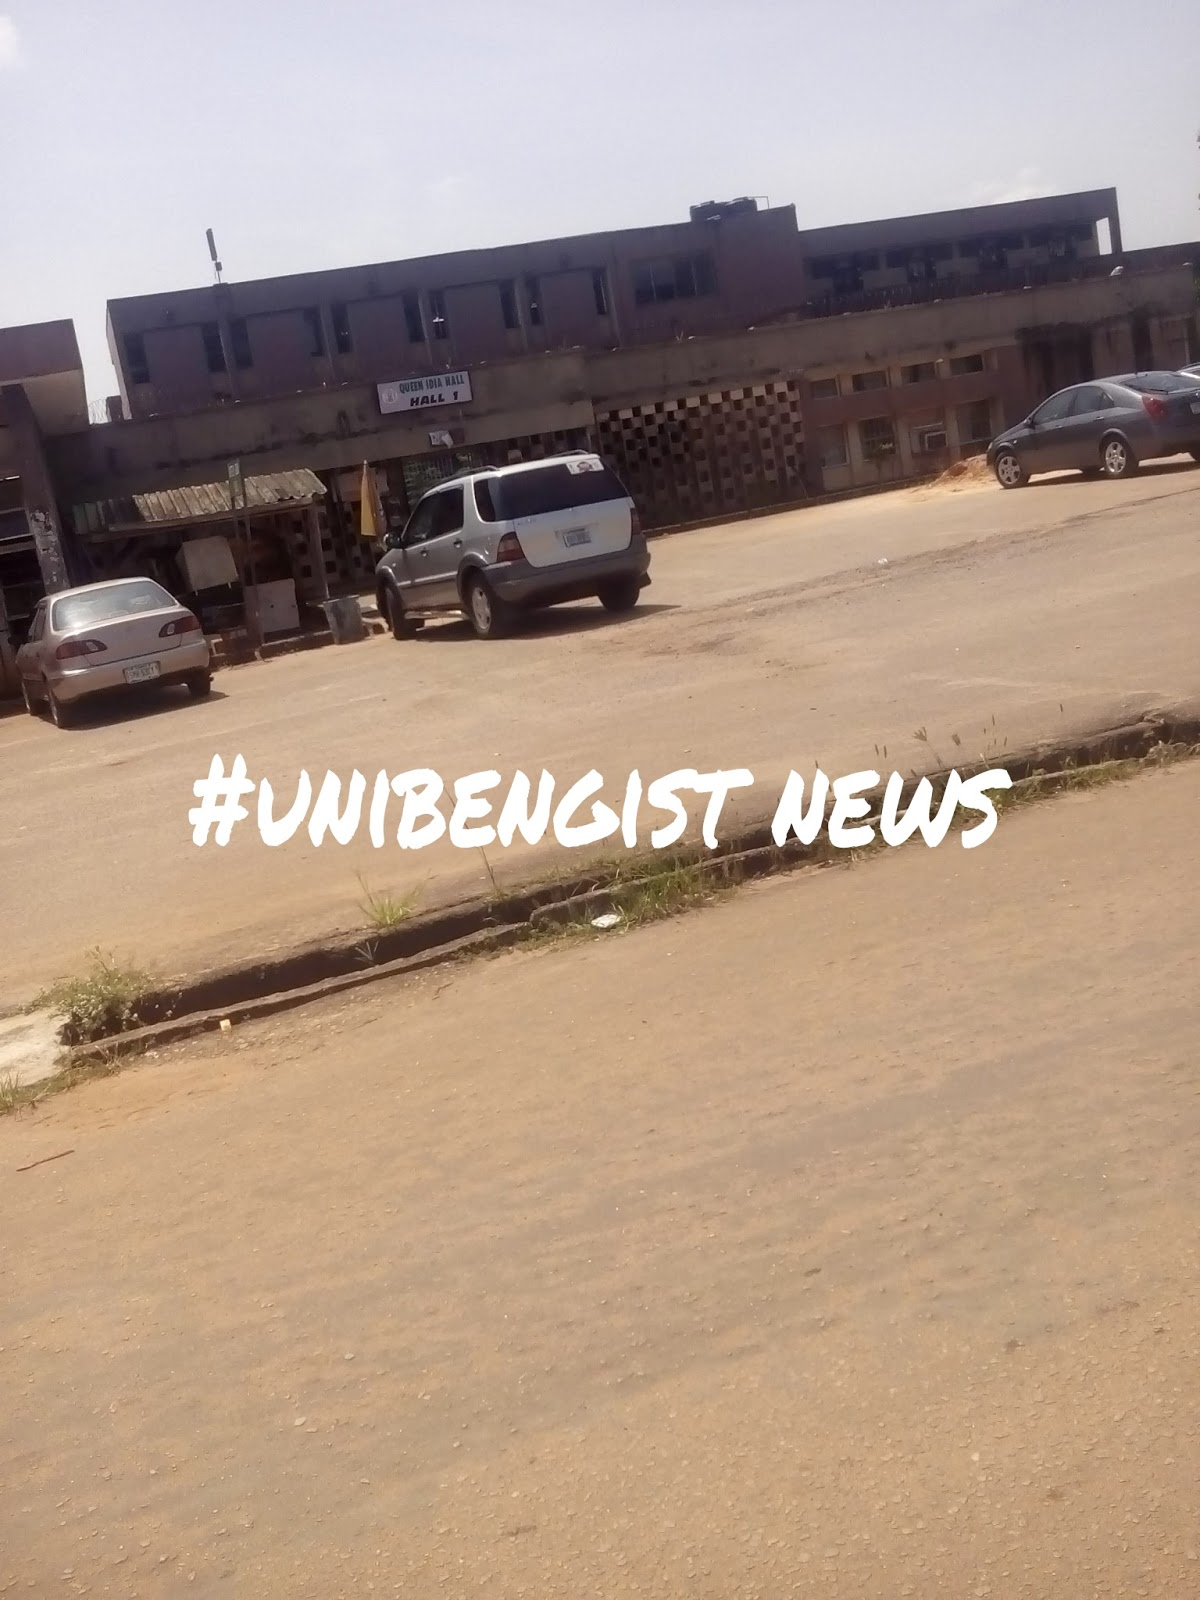 resume When Is Uniben Resuming uniben gist update hostel accommodation for returning students students